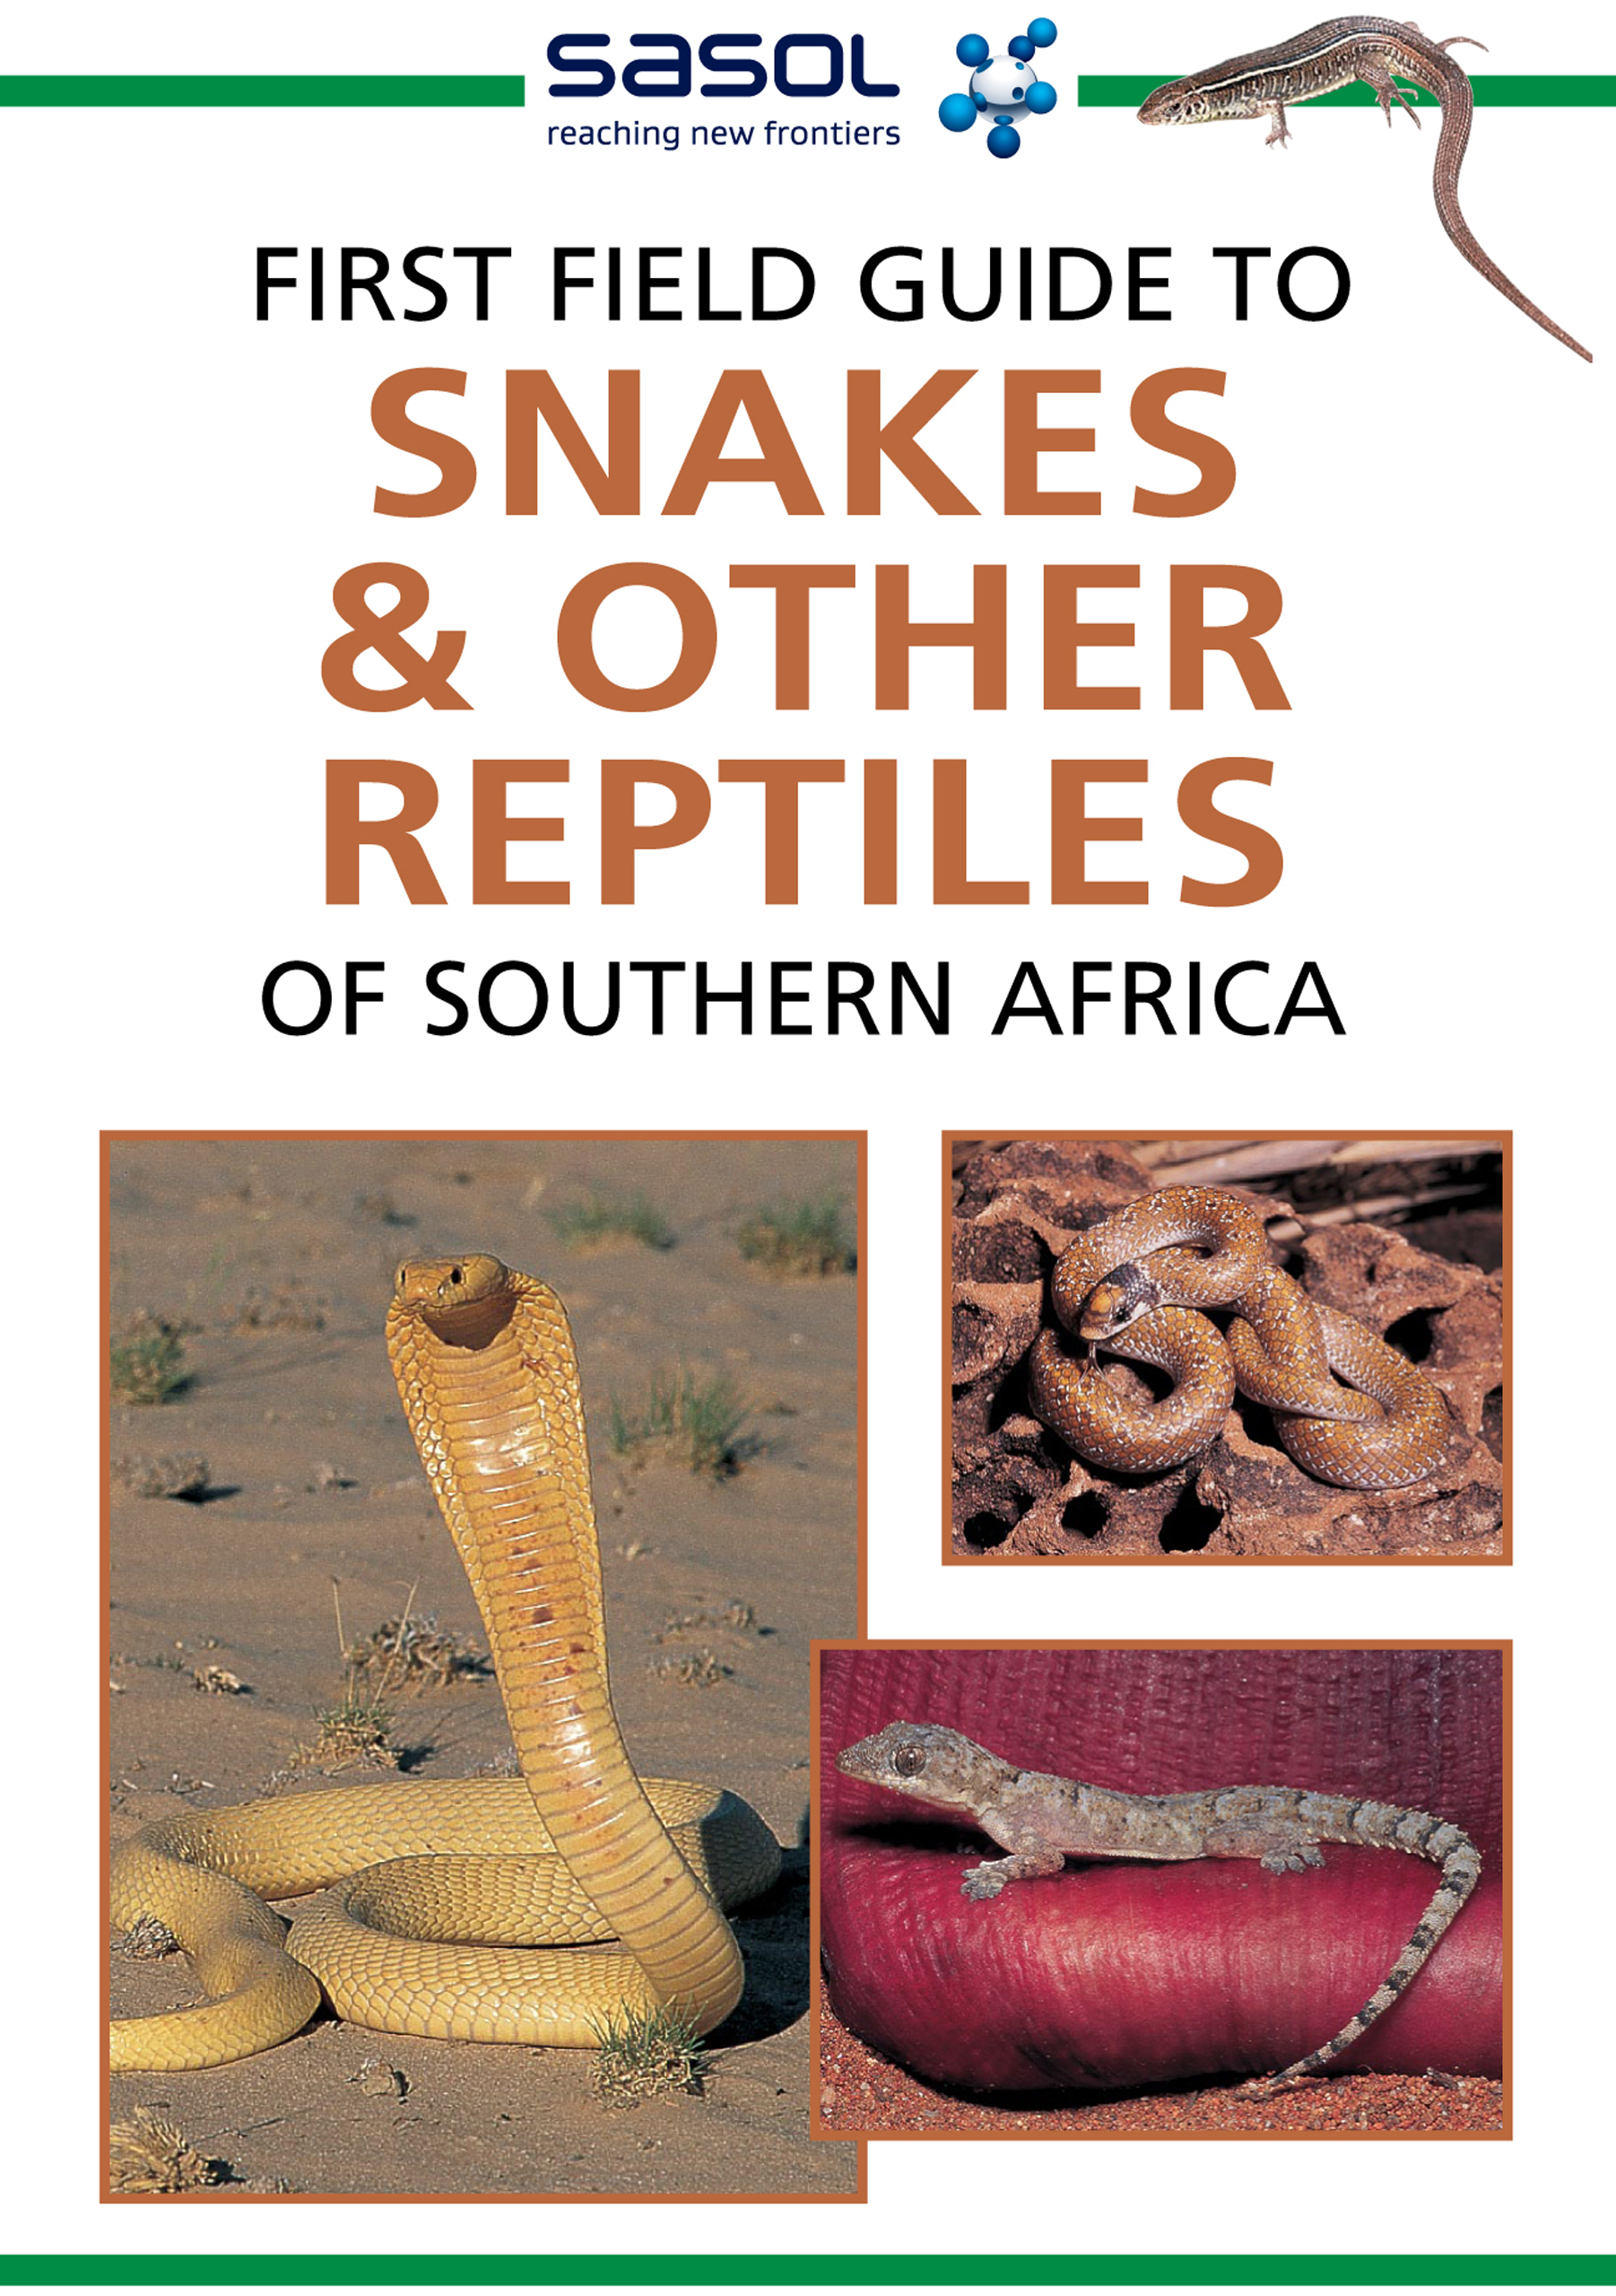 Picture of Sasol first field guide to snakes & other reptiles of Southern Africa